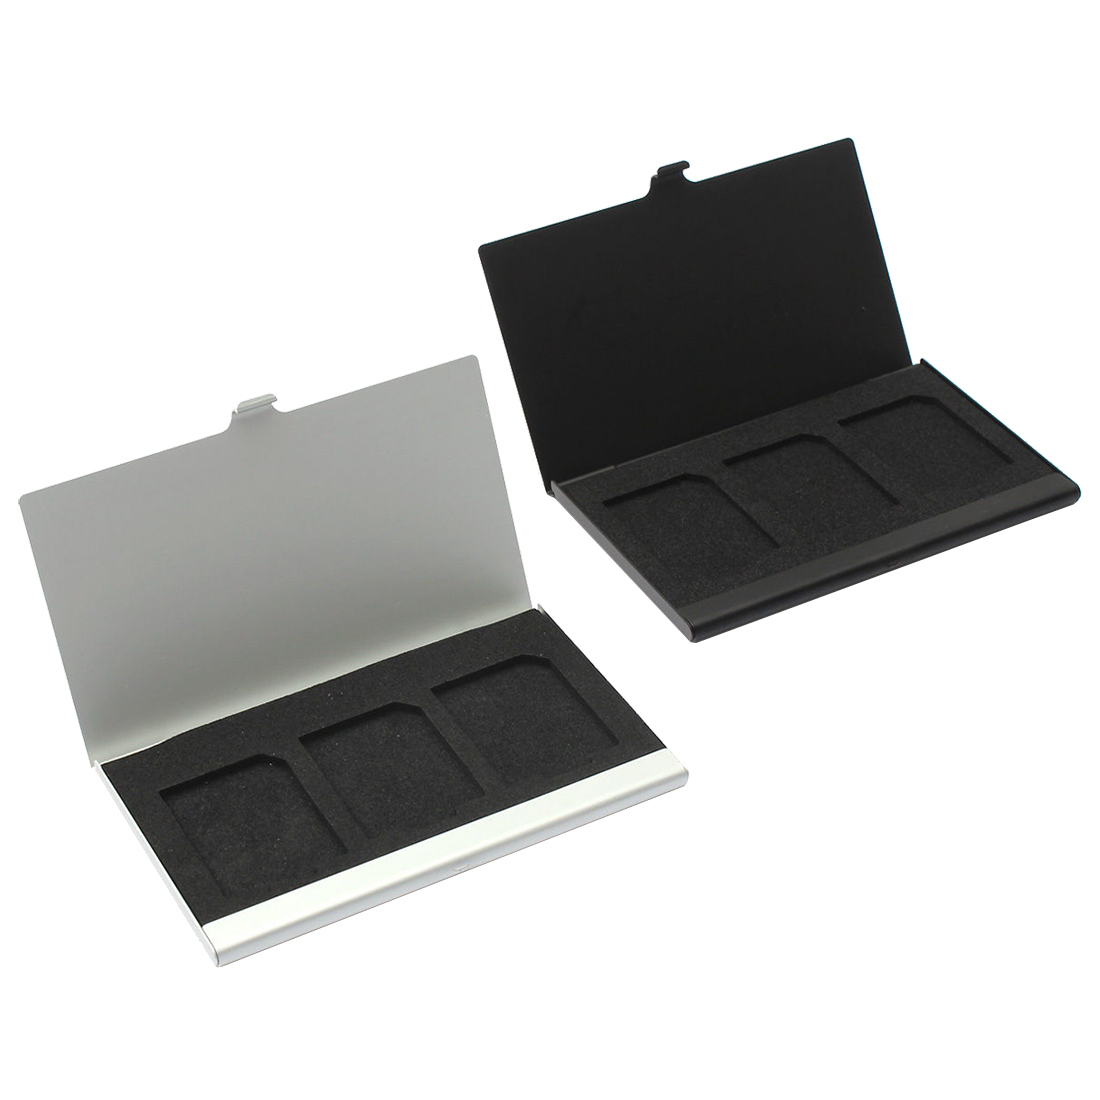 Aluminum Alloy Memory Card Case Card Box Holders For 3PCS SD Cards